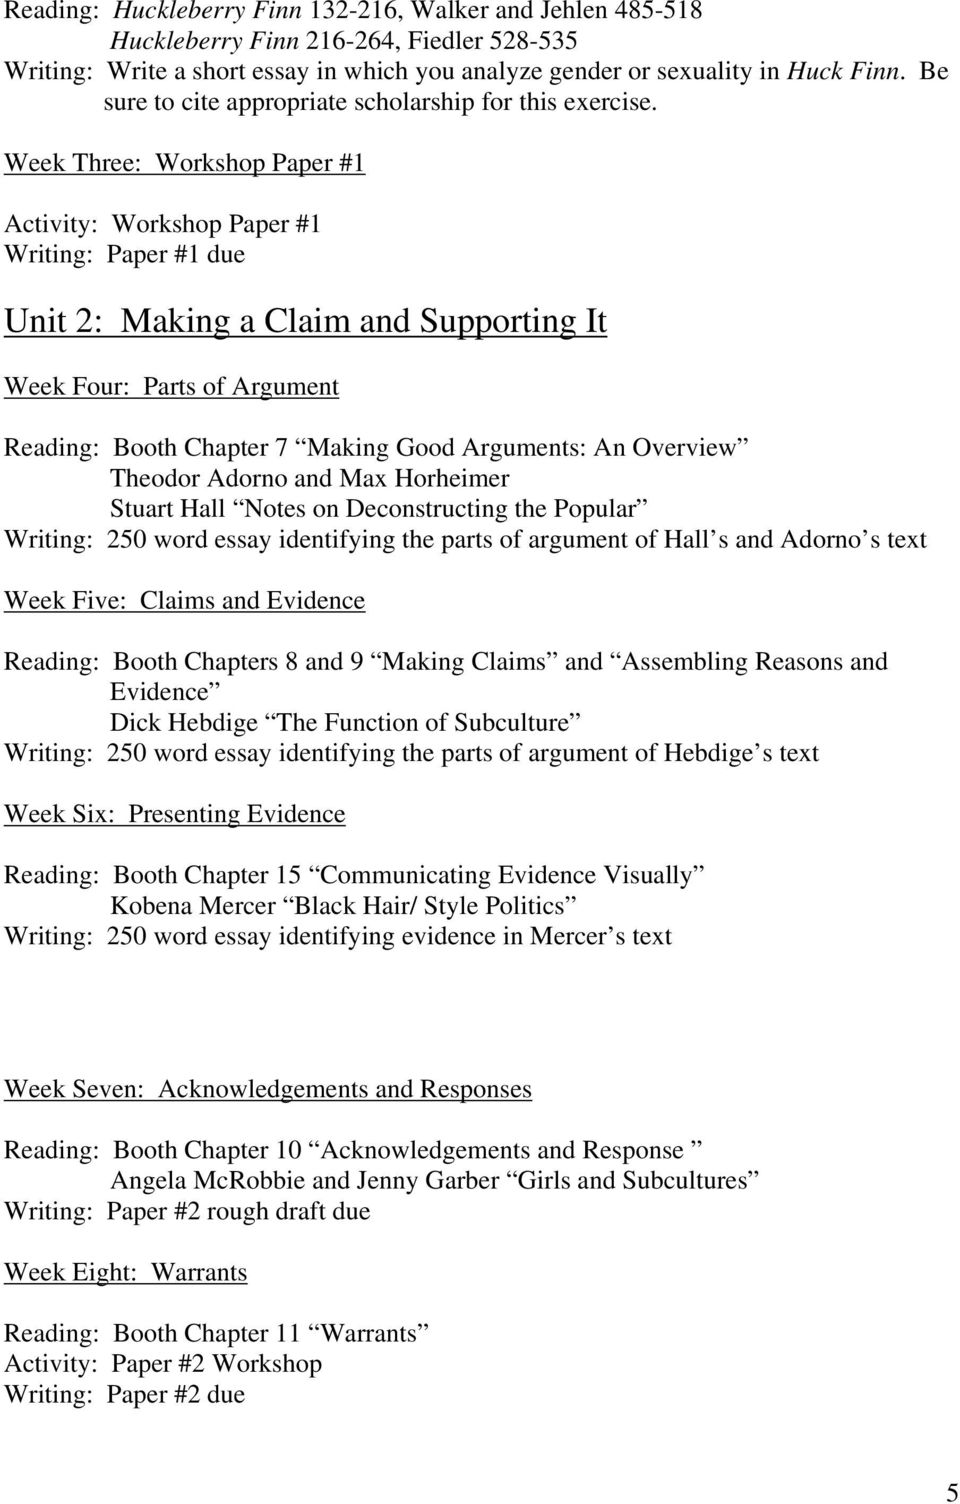 Week Three: Workshop Paper #1 Activity: Workshop Paper #1 Writing: Paper #1 due Unit 2: Making a Claim and Supporting It Week Four: Parts of Argument Reading: Booth Chapter 7 Making Good Arguments: